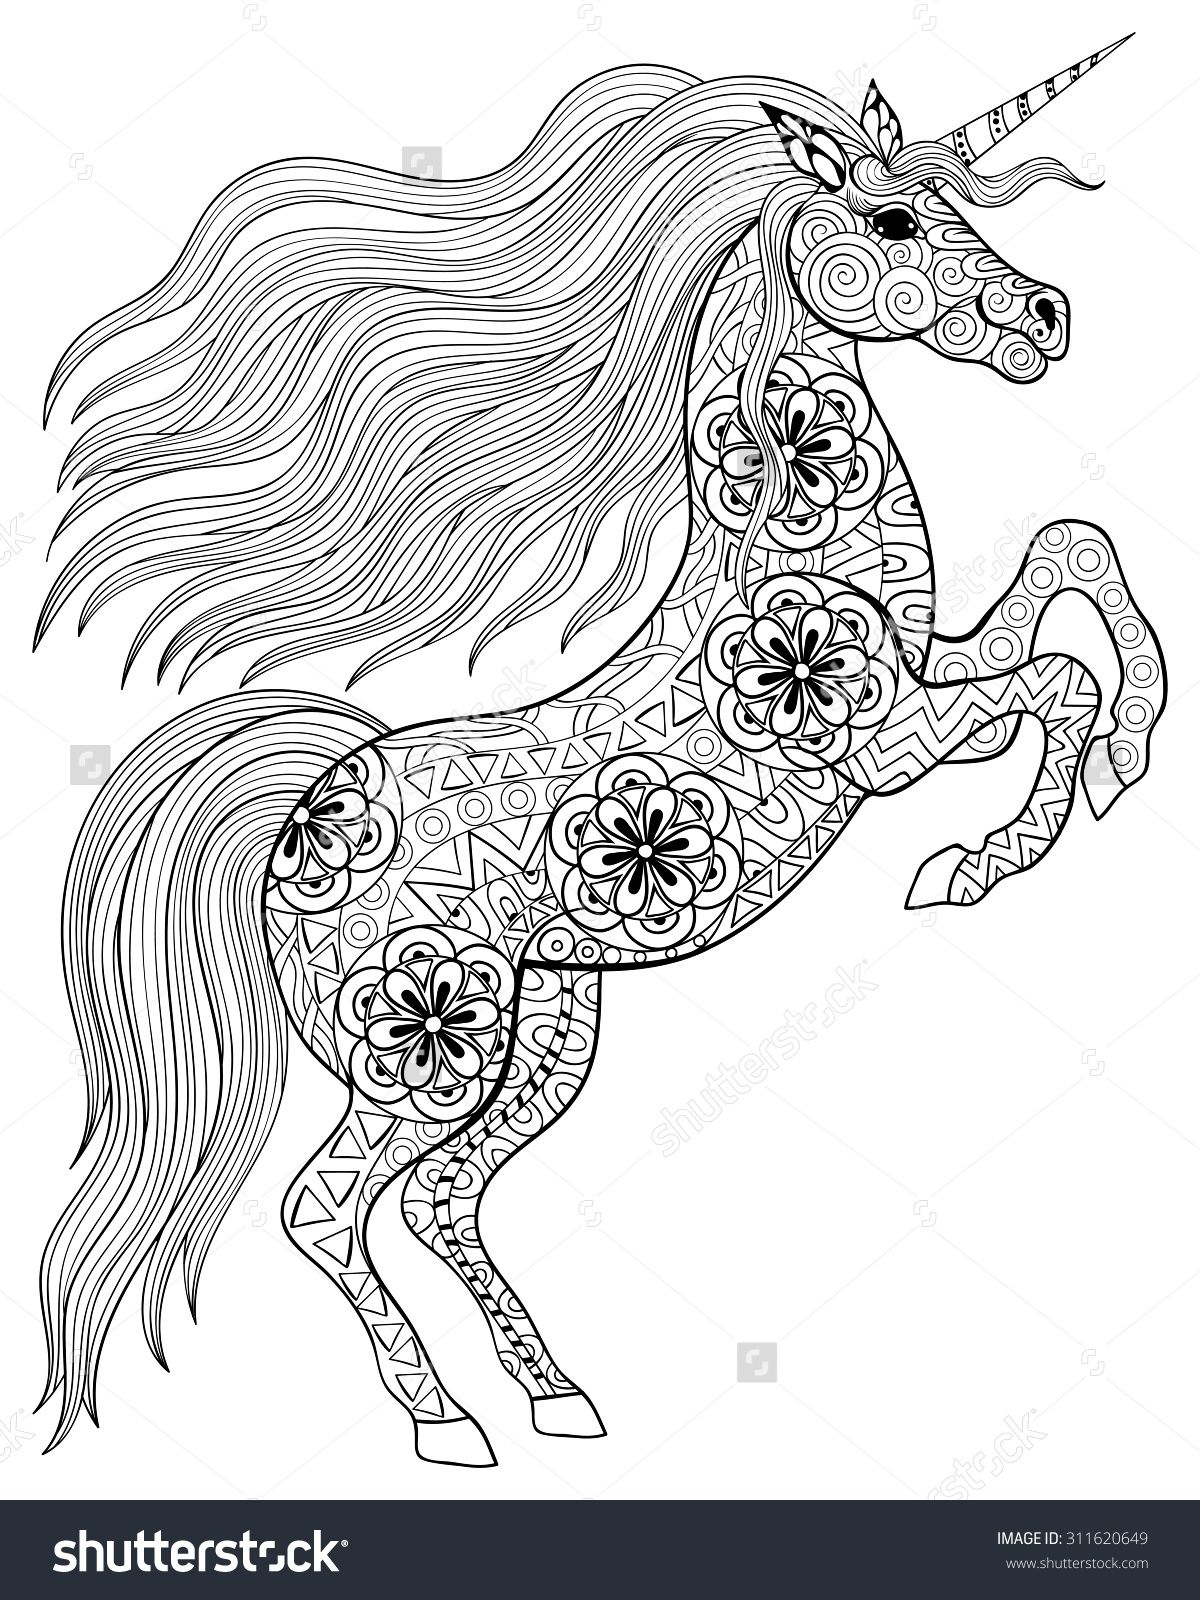 Adult Coloring Page from the Coloring Book Goddesses